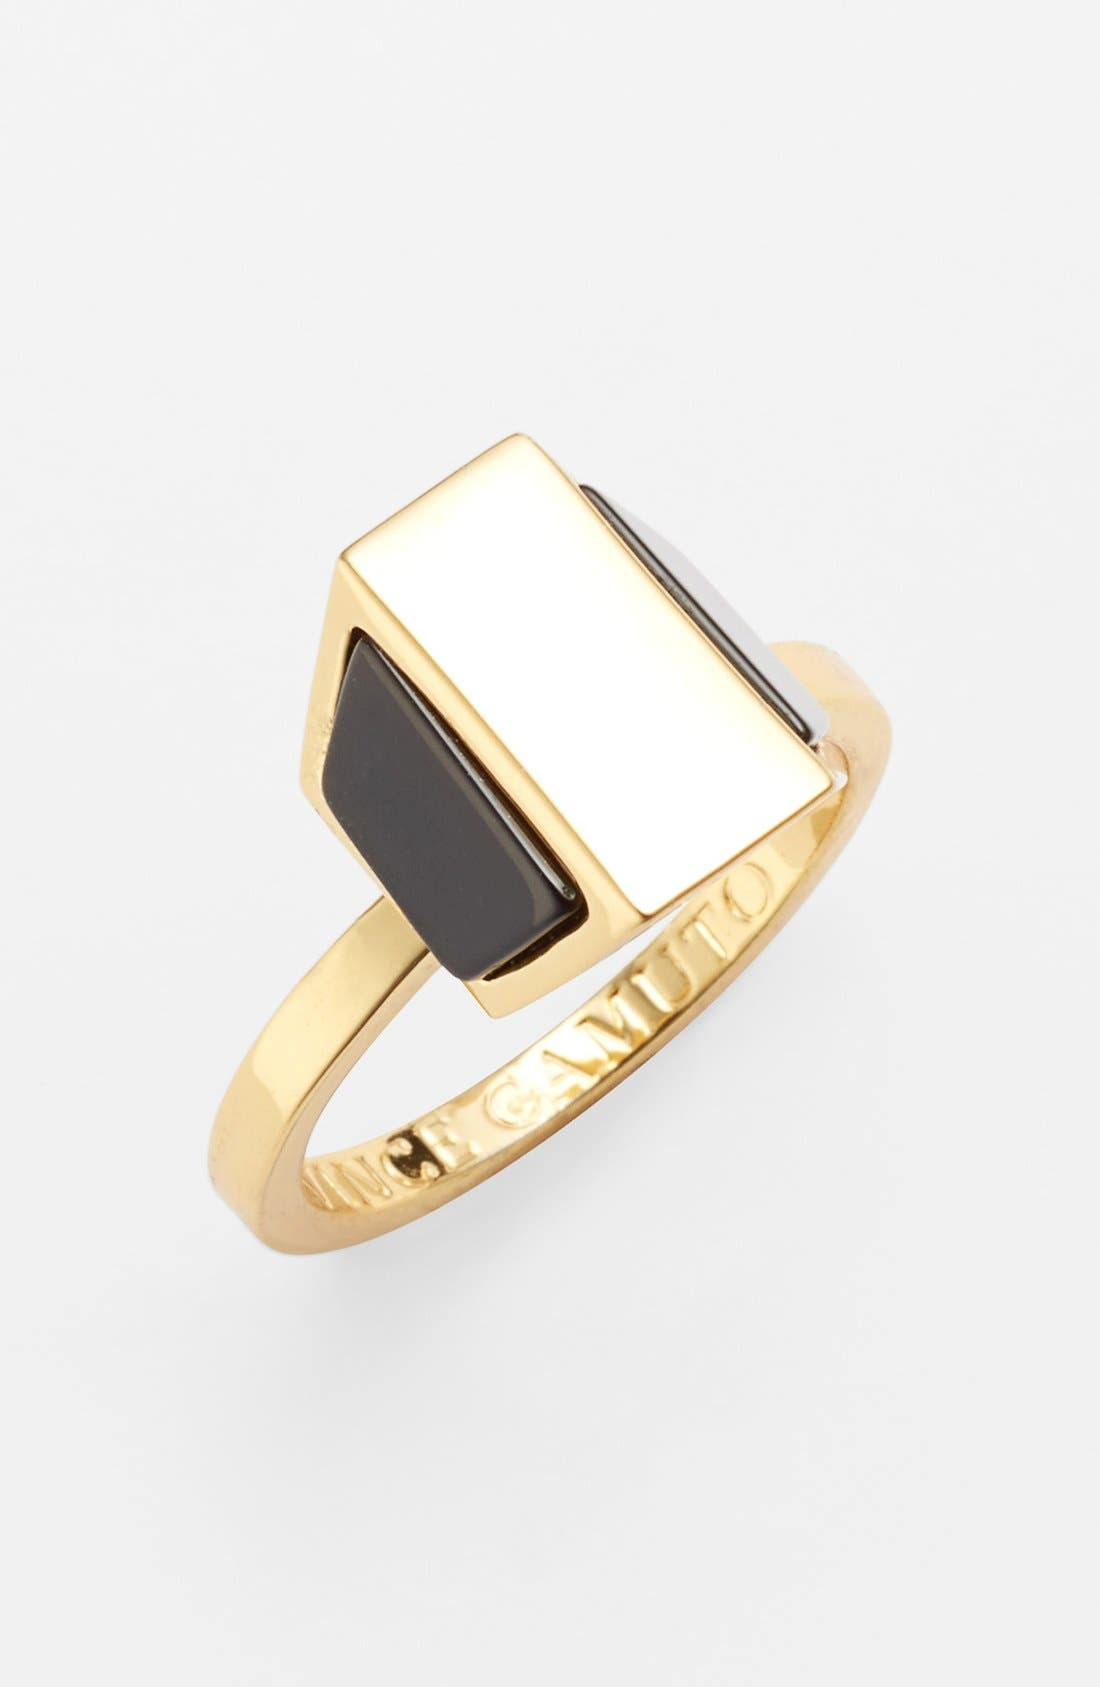 Main Image - Vince Camuto 'Love Stoned' Geometric Ring